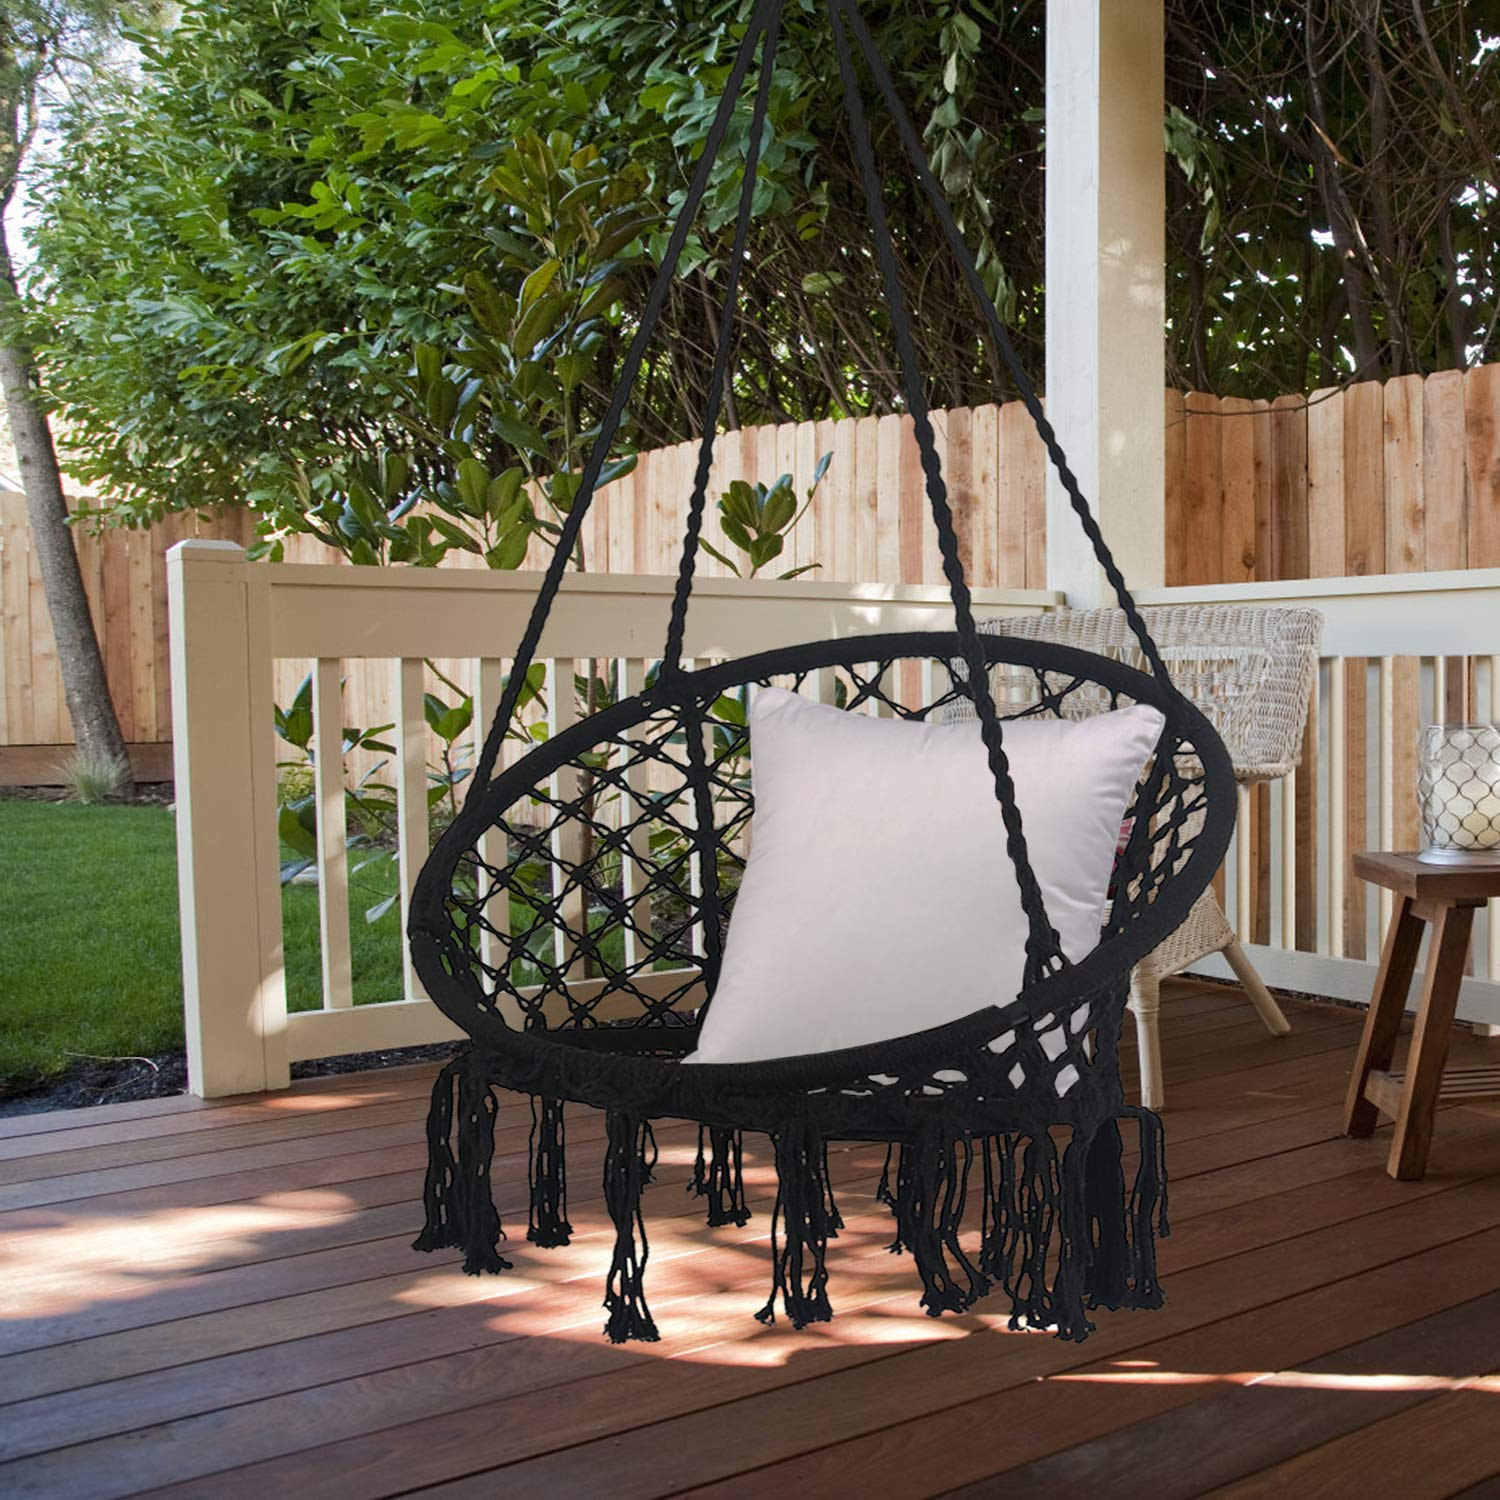 Bathonly Hammock Chair Macrame Swing,100% Handmade Knitted Hanging Swing Chair,Perfect for Indoor/Outhdoor,B edroom, Yard - 230lb Capacity